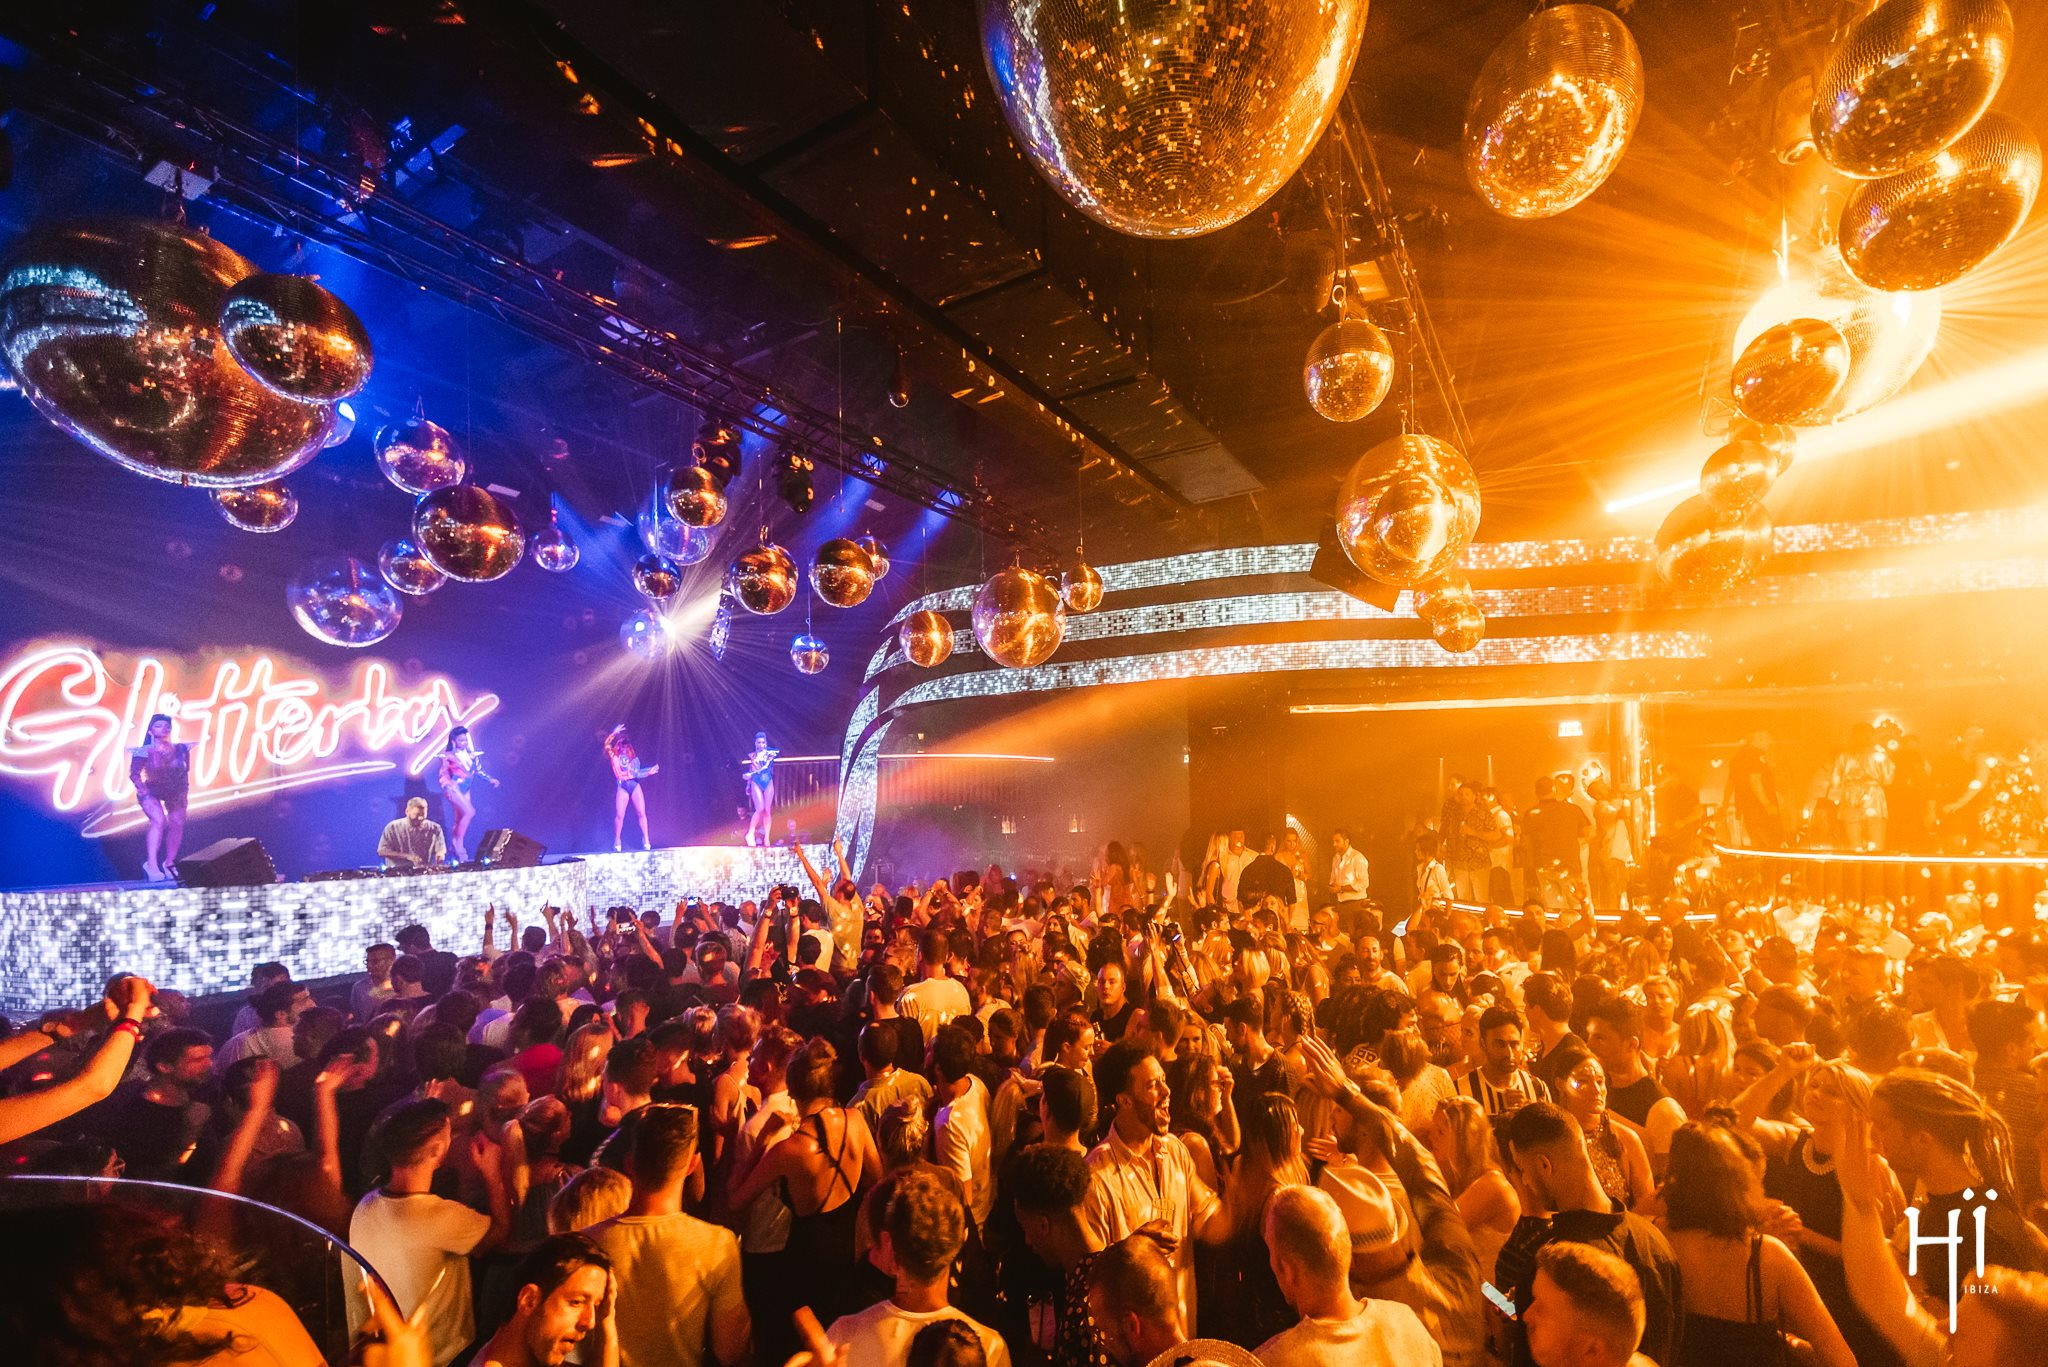 36 Jaw-Dropping Photos From The Glitterbox Opening Party In Hï